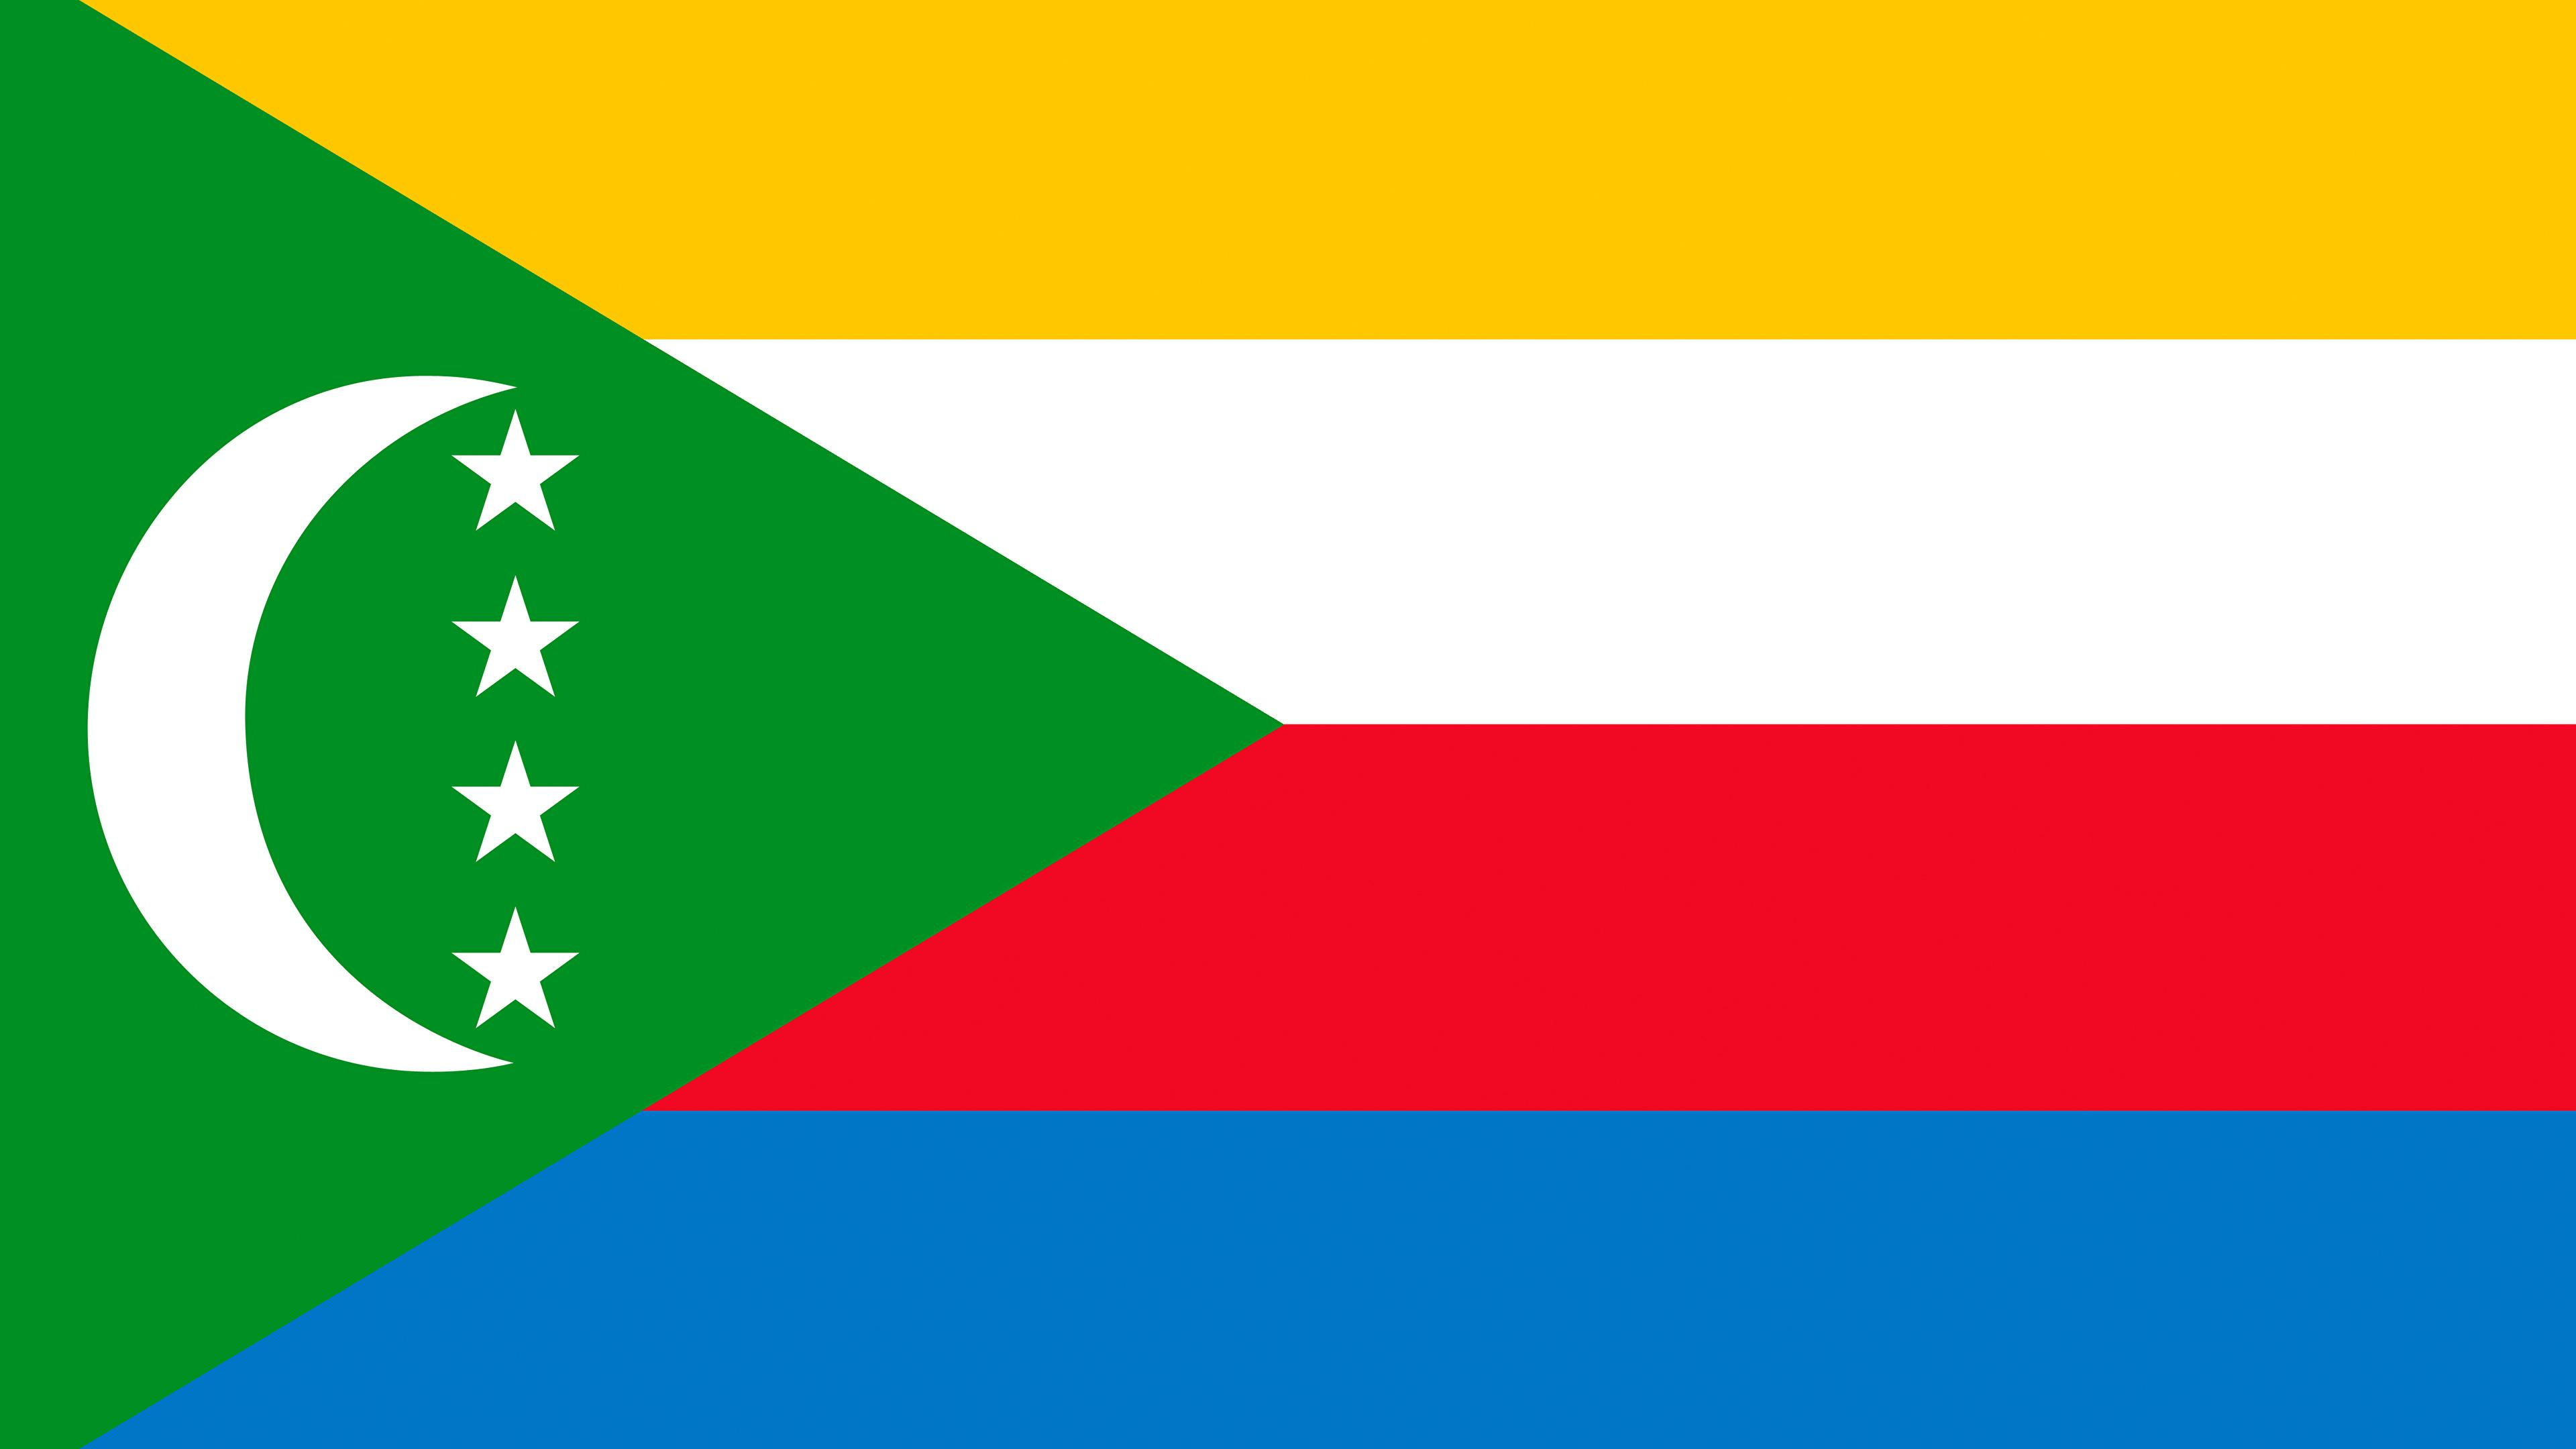 Wallpapers Comoros Flag Stripes 3840x2160